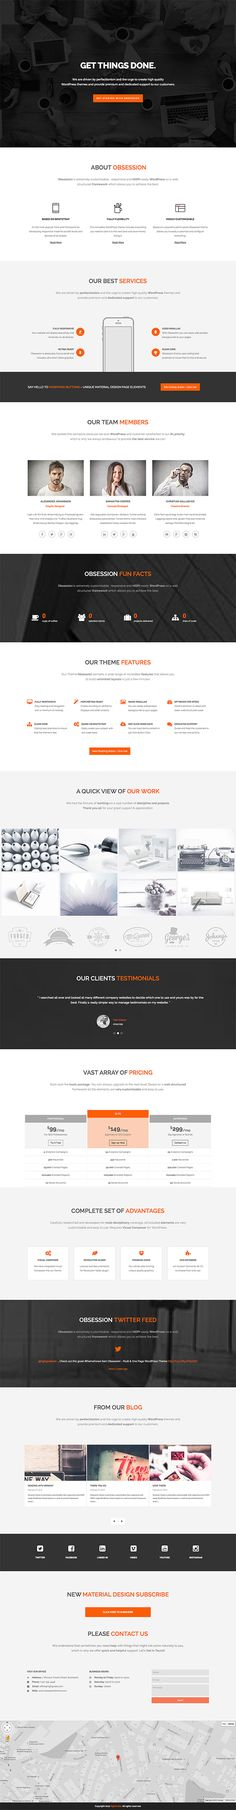 Obsession - Material Design WordPress Theme on Behance